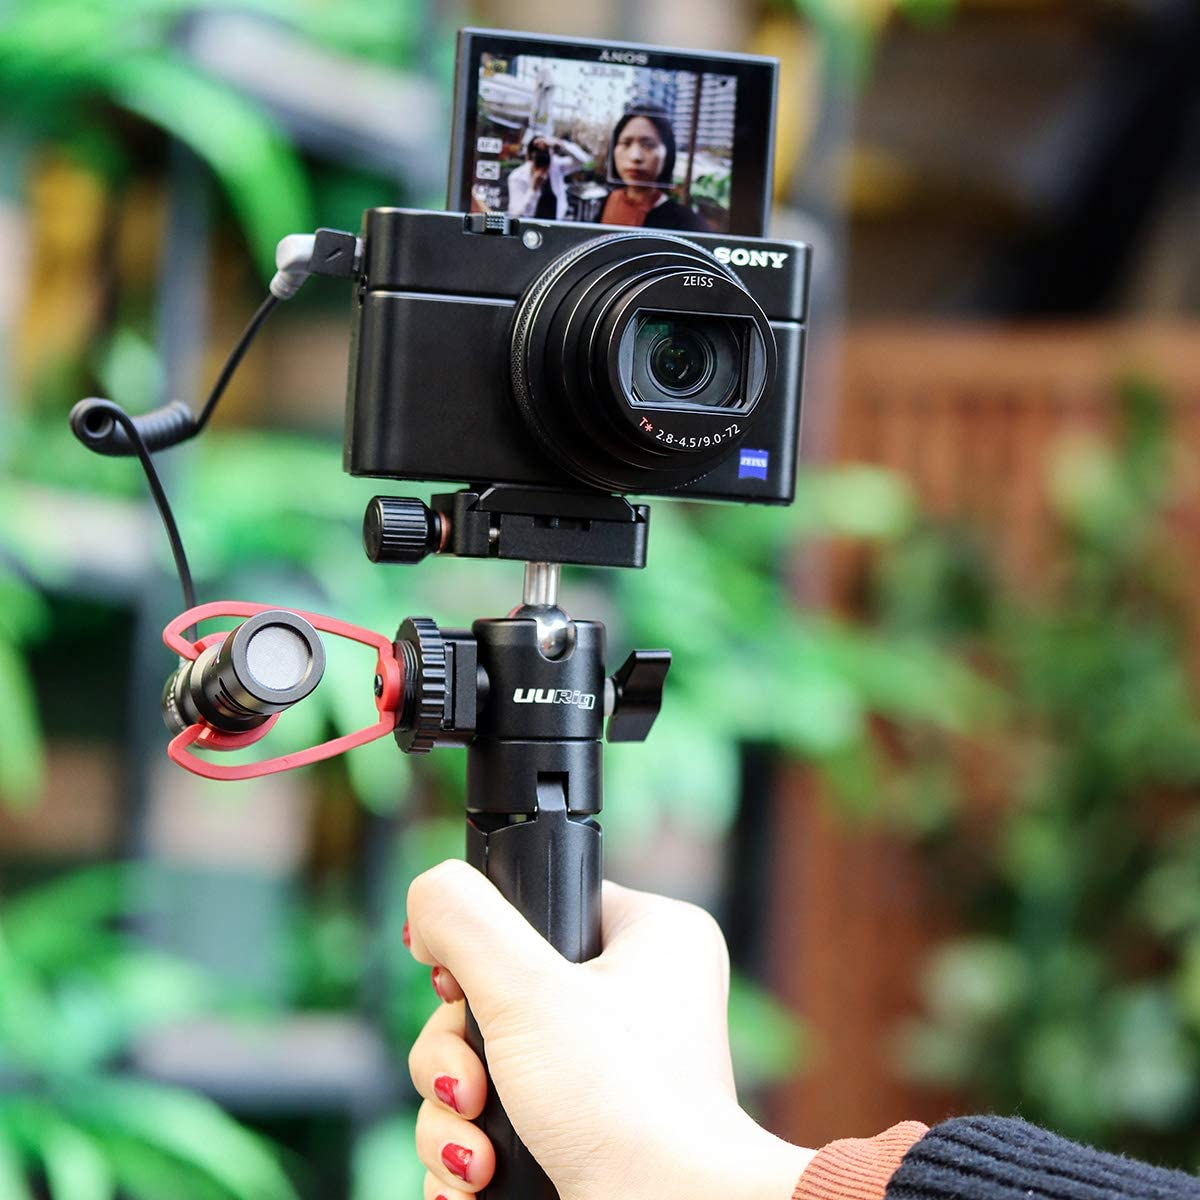 SAIREN Vlog Video On Camera Microphone Cardioid Directional Plug and Use Broadcast Mic High Sensitivity for Canon Nikon Panasonic Fuji Sony A7 III etc DSLR//Camera for iPhone 11 Pro Max Smartphone